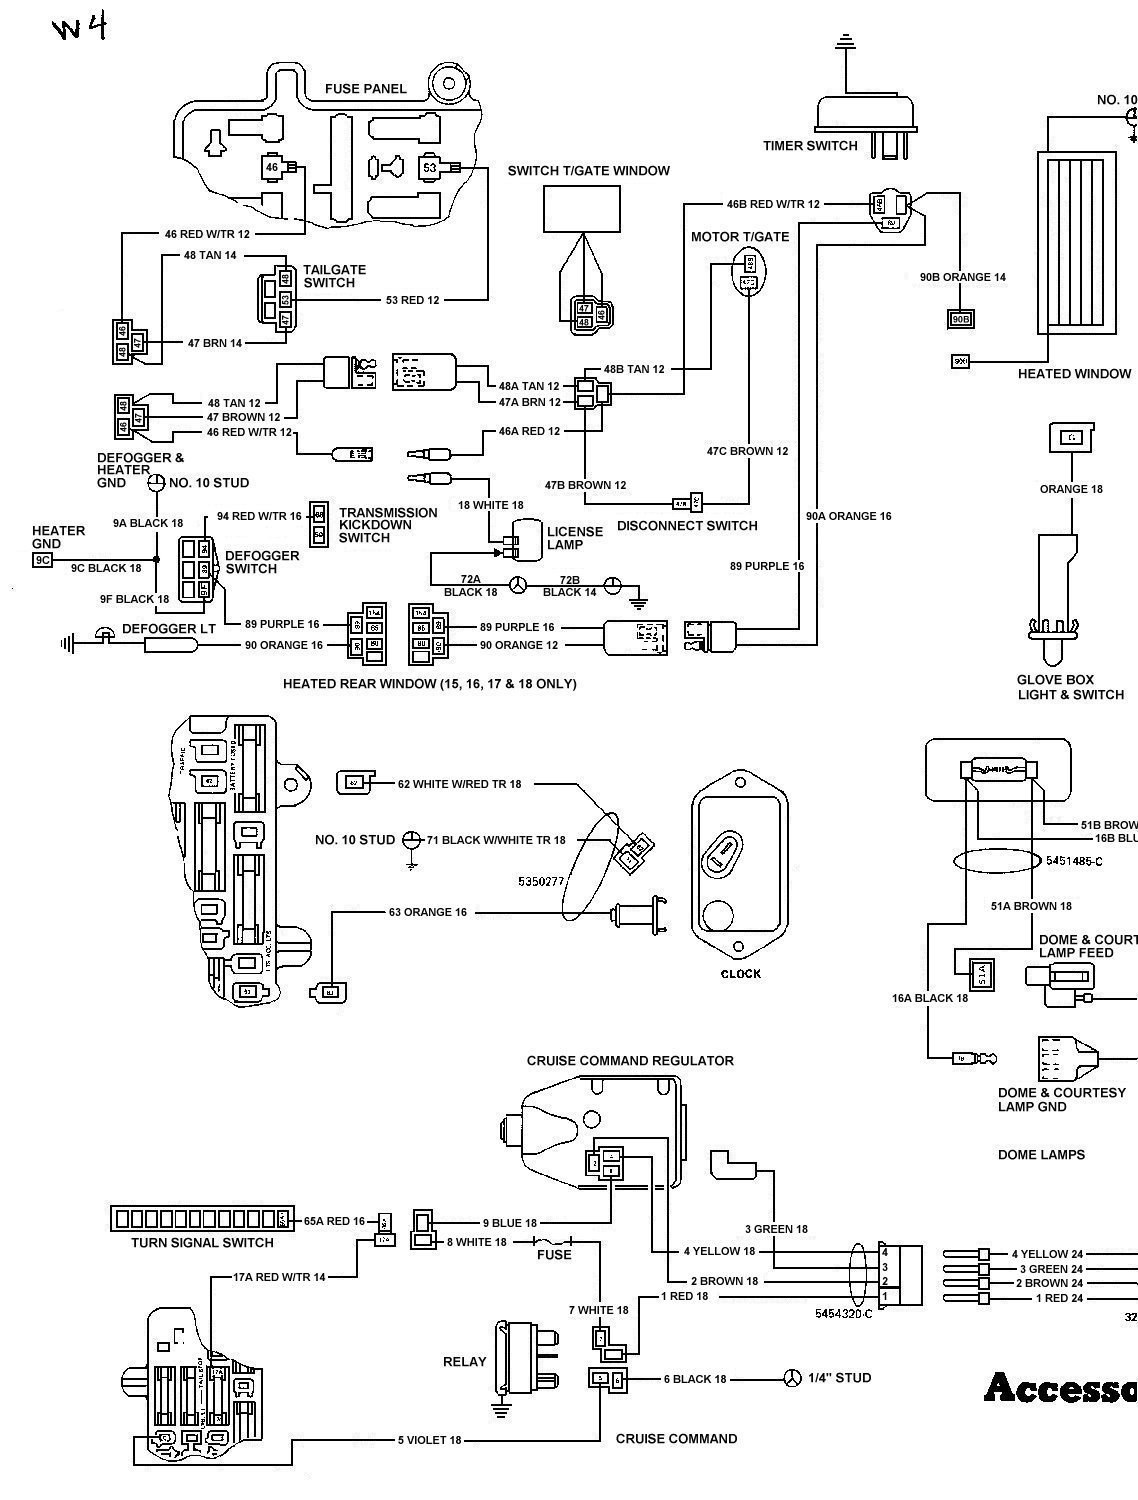 1950 Willys Jeepster Wiring Diagram Starting Know About 1984 Jeep Wagoneer Just Data Rh Ag Skiphire Co Uk